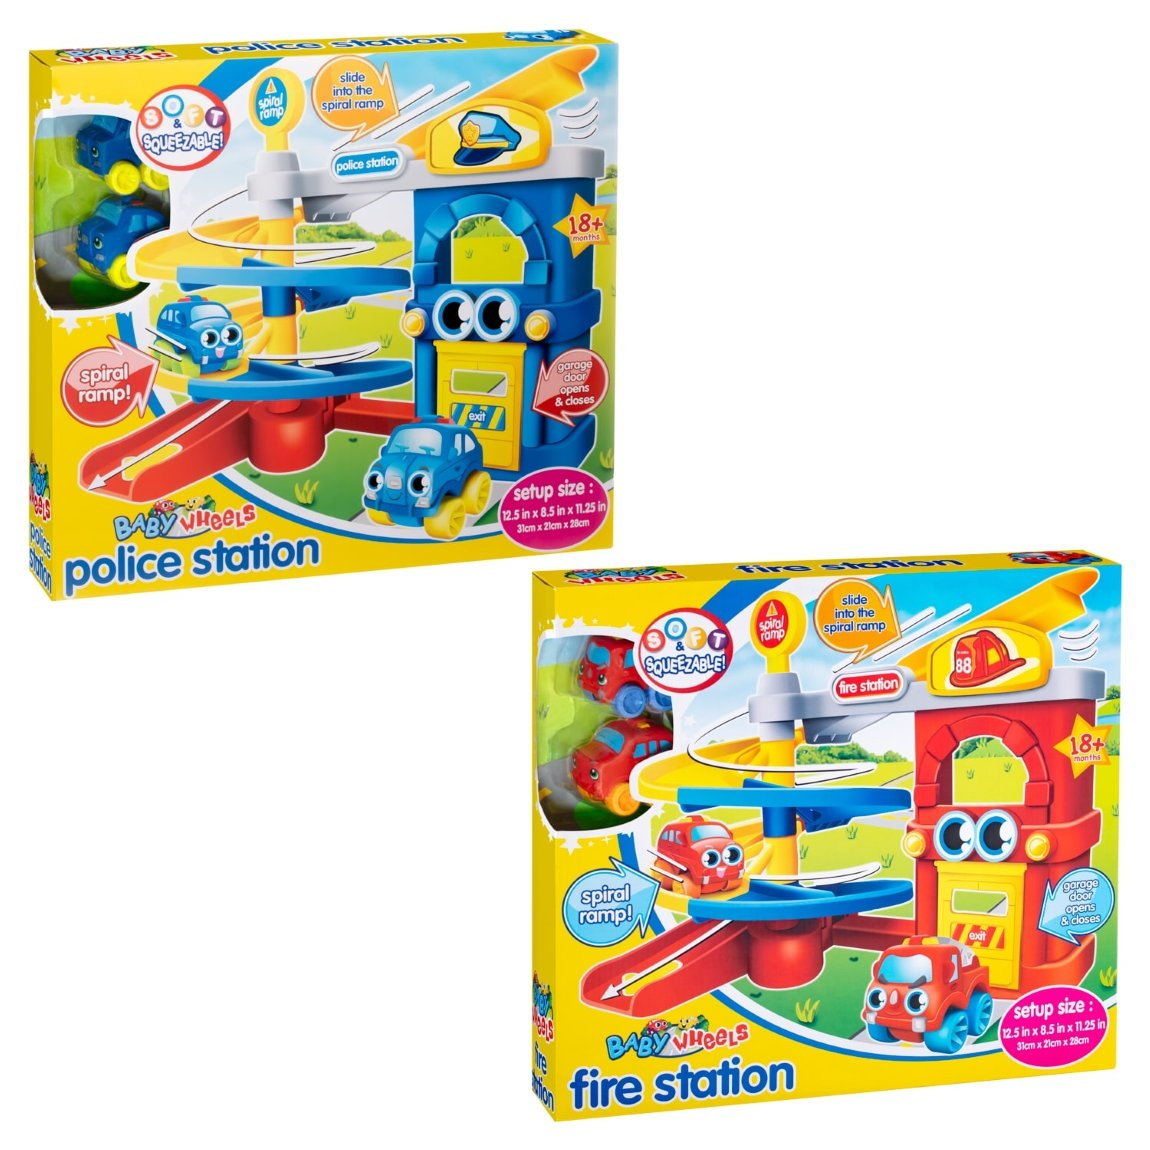 Baby Wheels Police Station